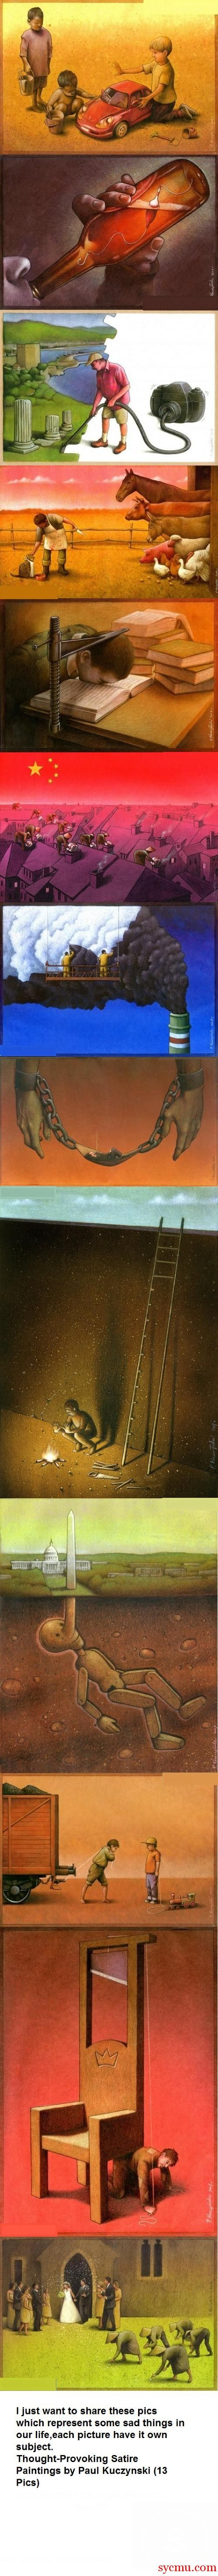 The Amazing Art of Paul Kuczynski